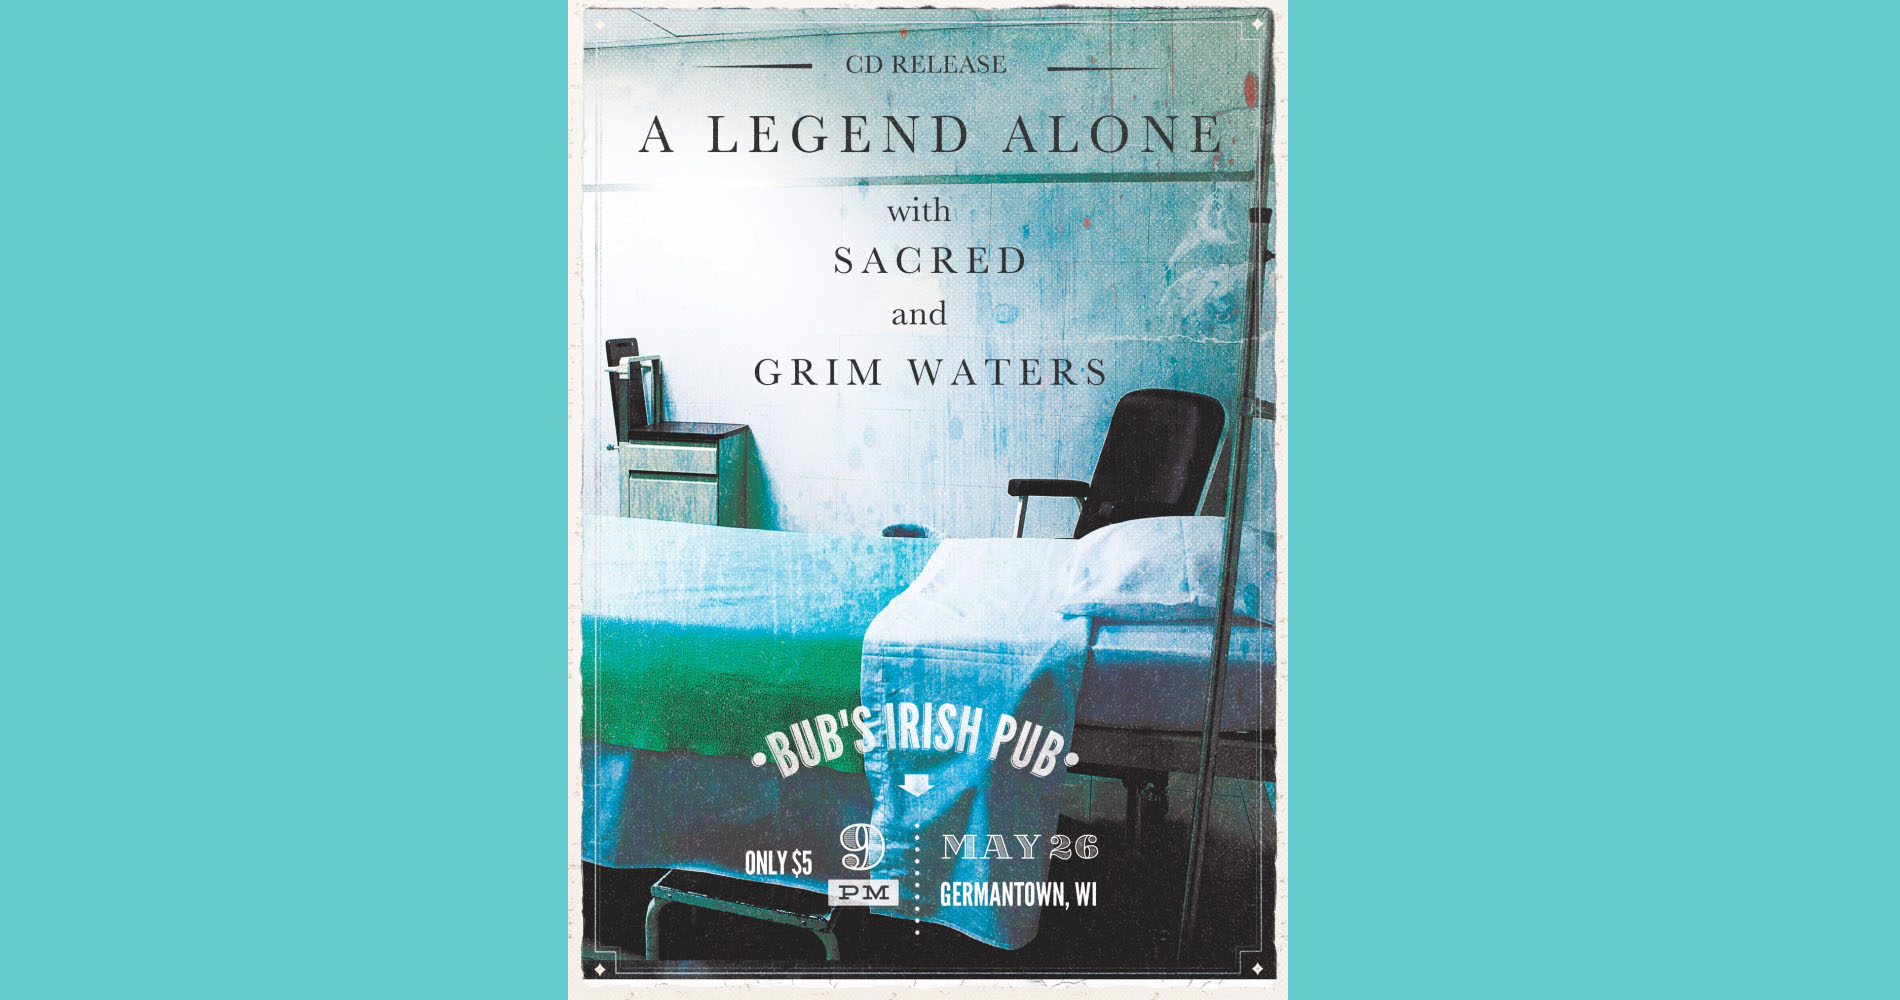 Grim Waters, Sacred & A Legend Alone